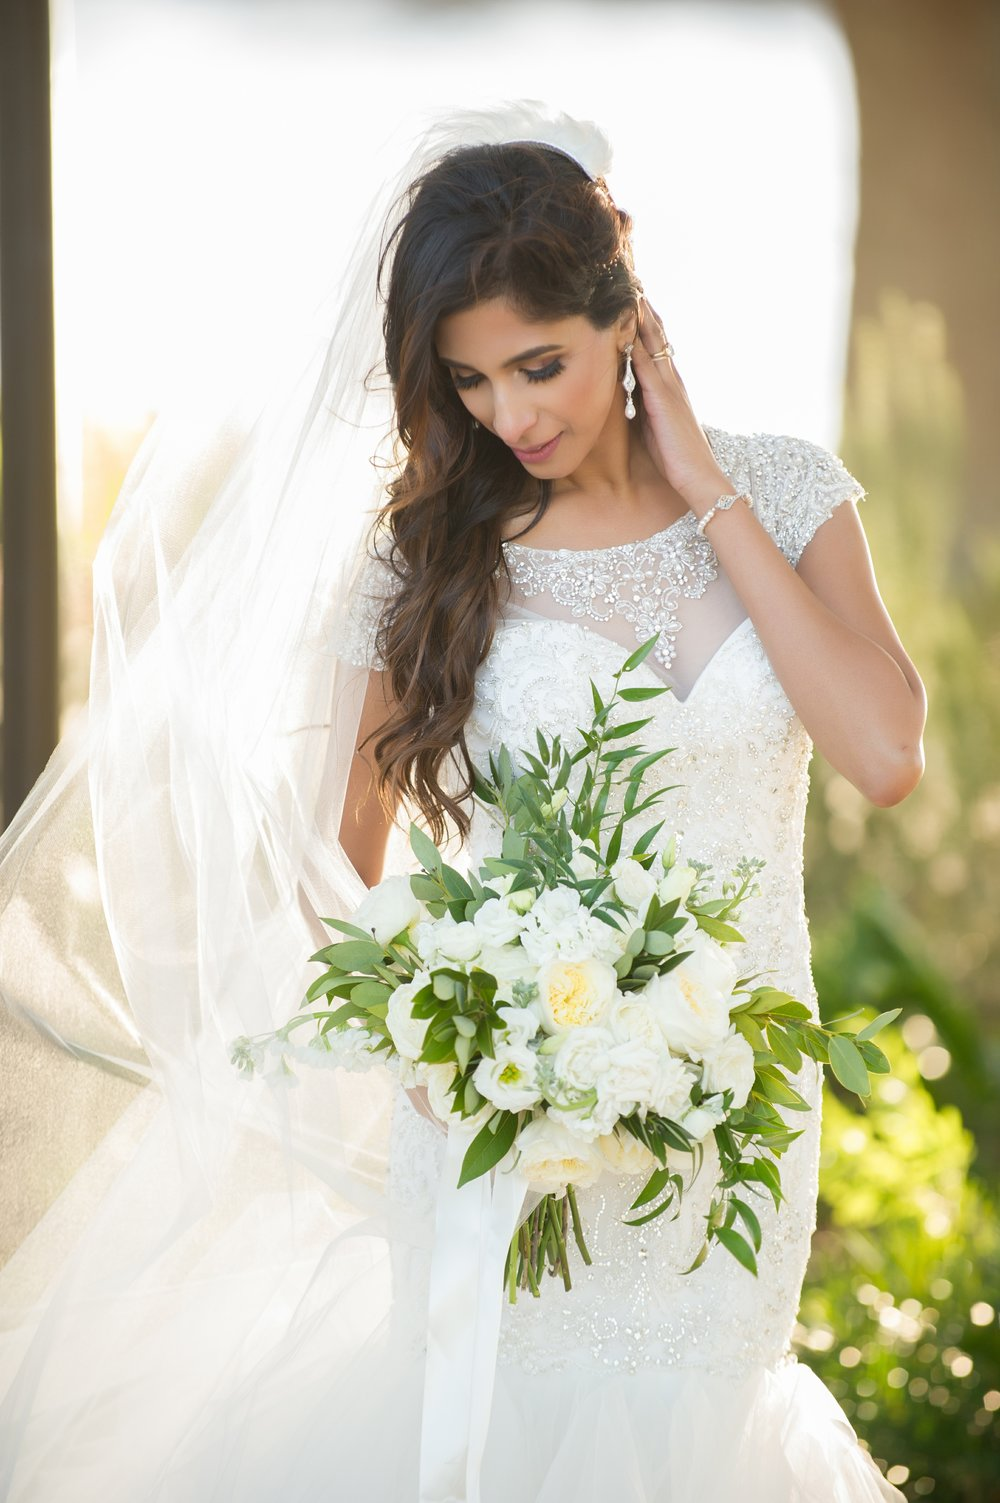 As a professional model, the bride was seriously working her bridal portraits! Yowza!!!